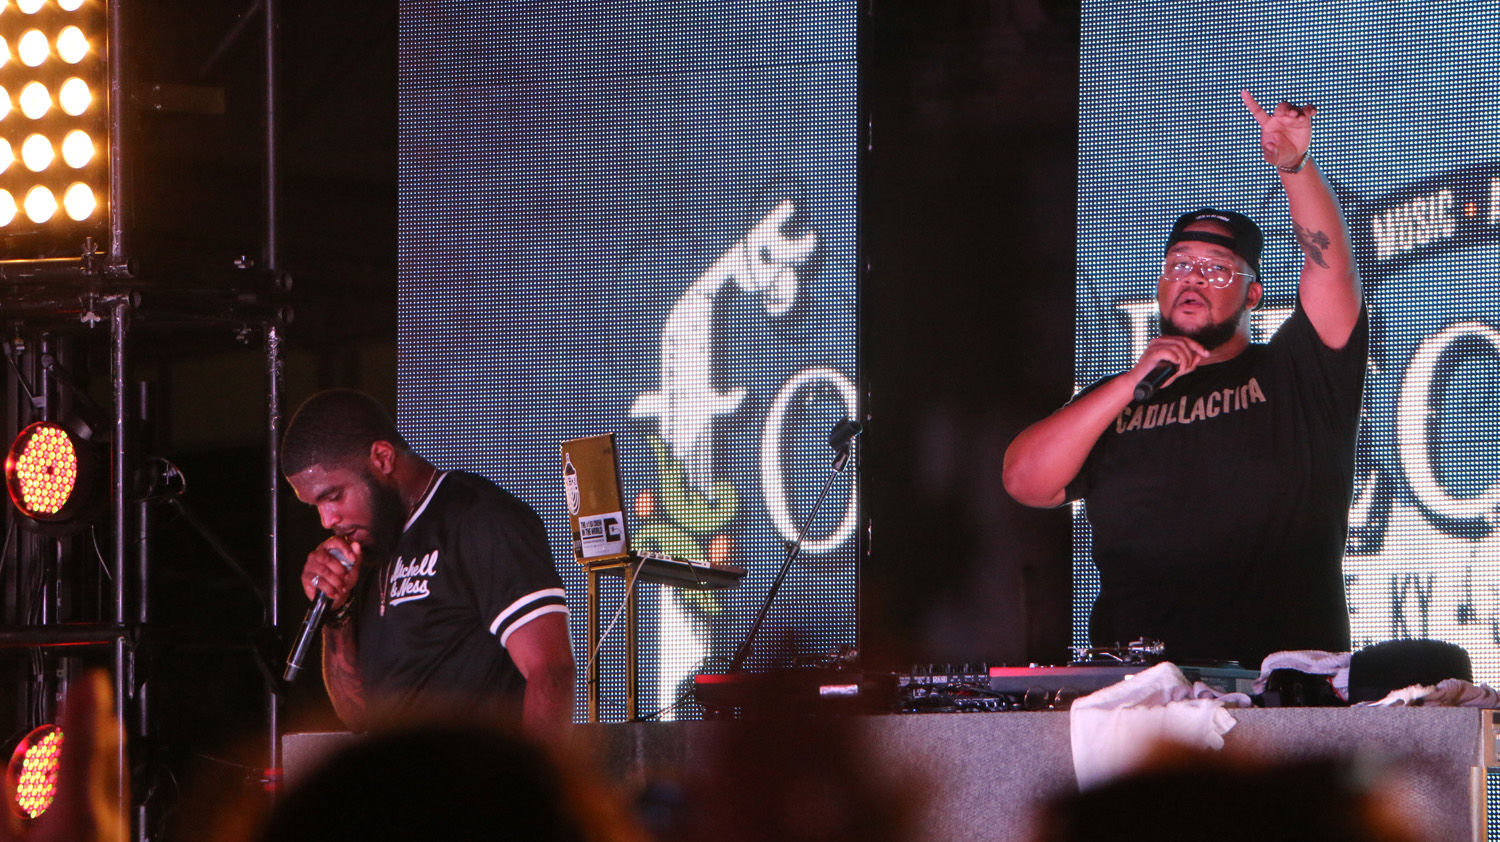 Big K.R.I.T., left, and DJ DiBia$e, right, perform at the Forecastle Festival in Louisville, Ky., on Friday, July 17, 2015. (MTSU Sidelines / John Connor Coulston)